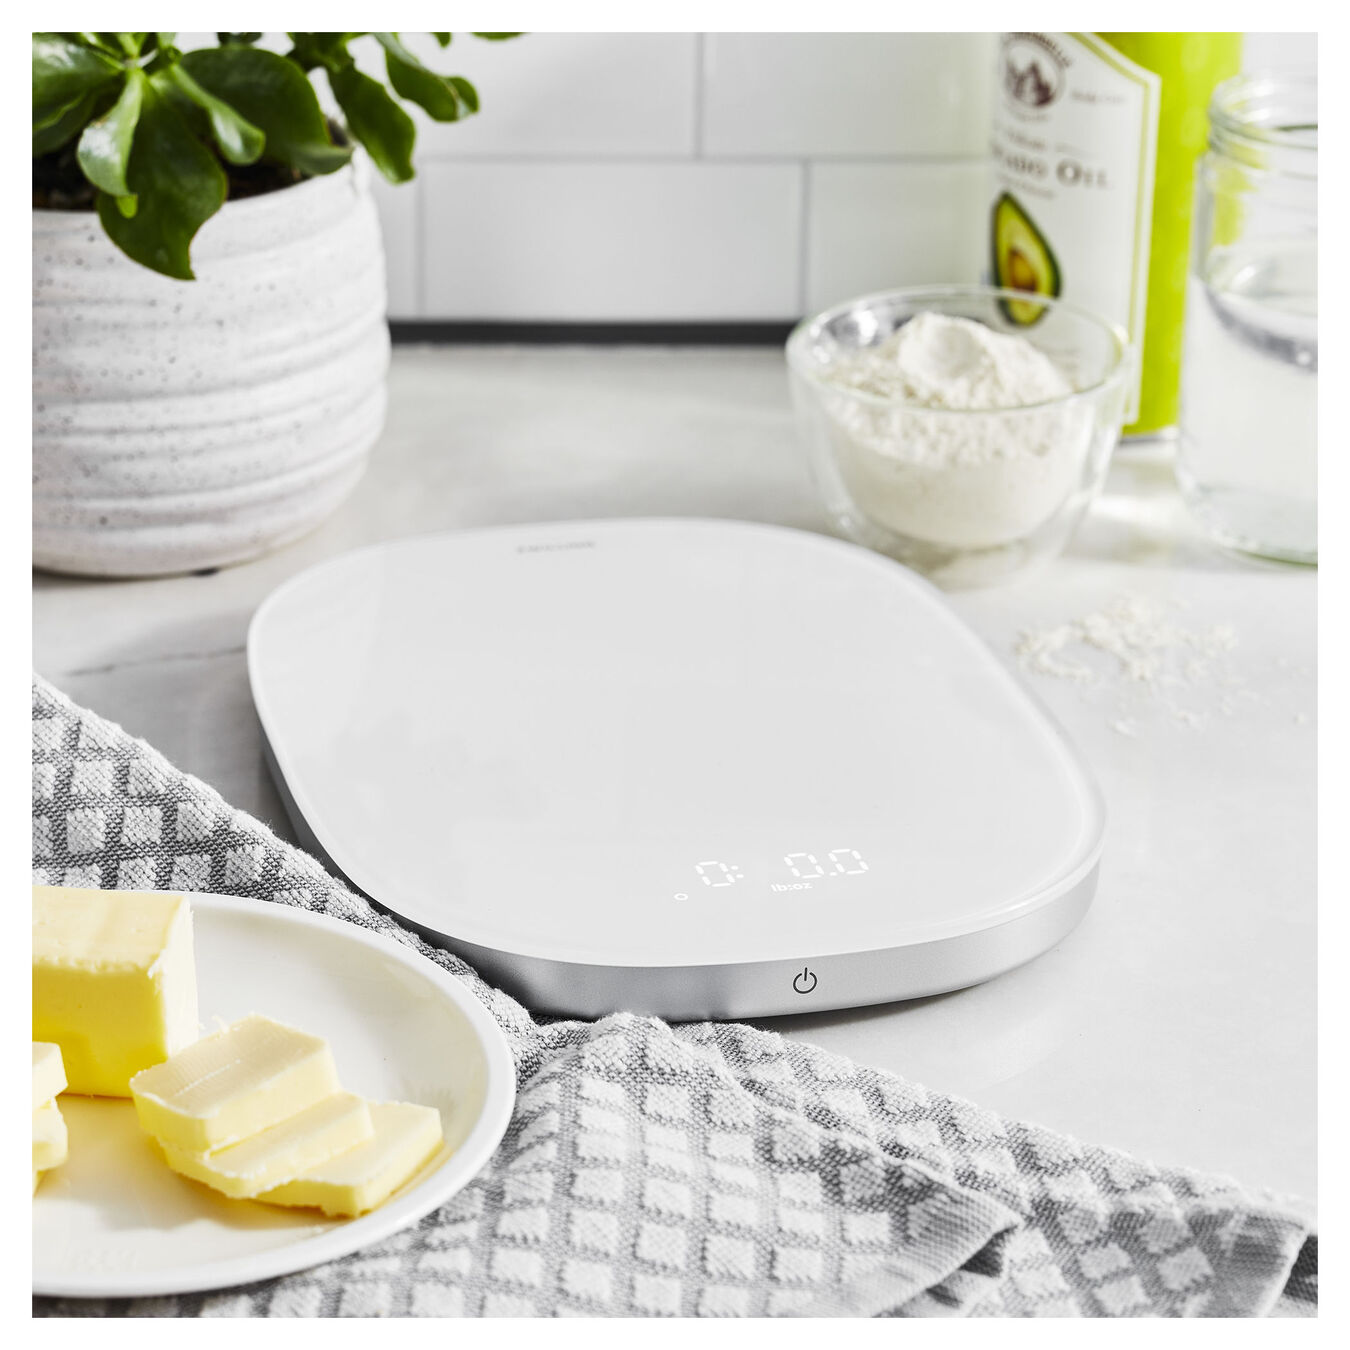 Digital Kitchen Scale,,large 3